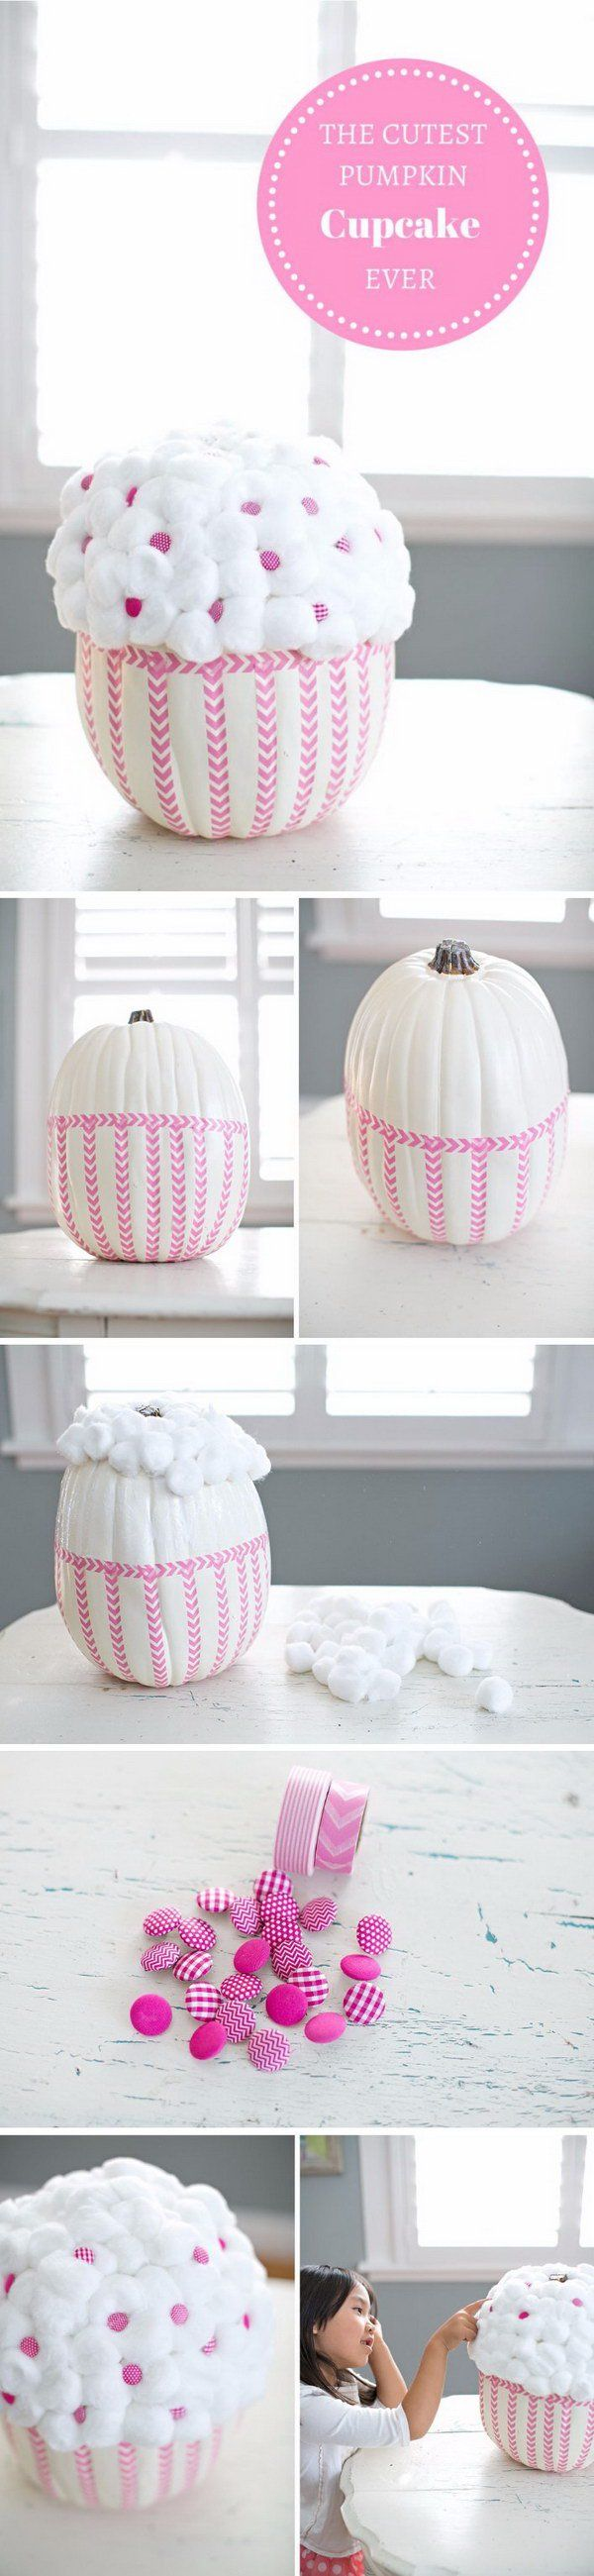 296 best Autumn Home Decor images on Pinterest | Table decorations ...